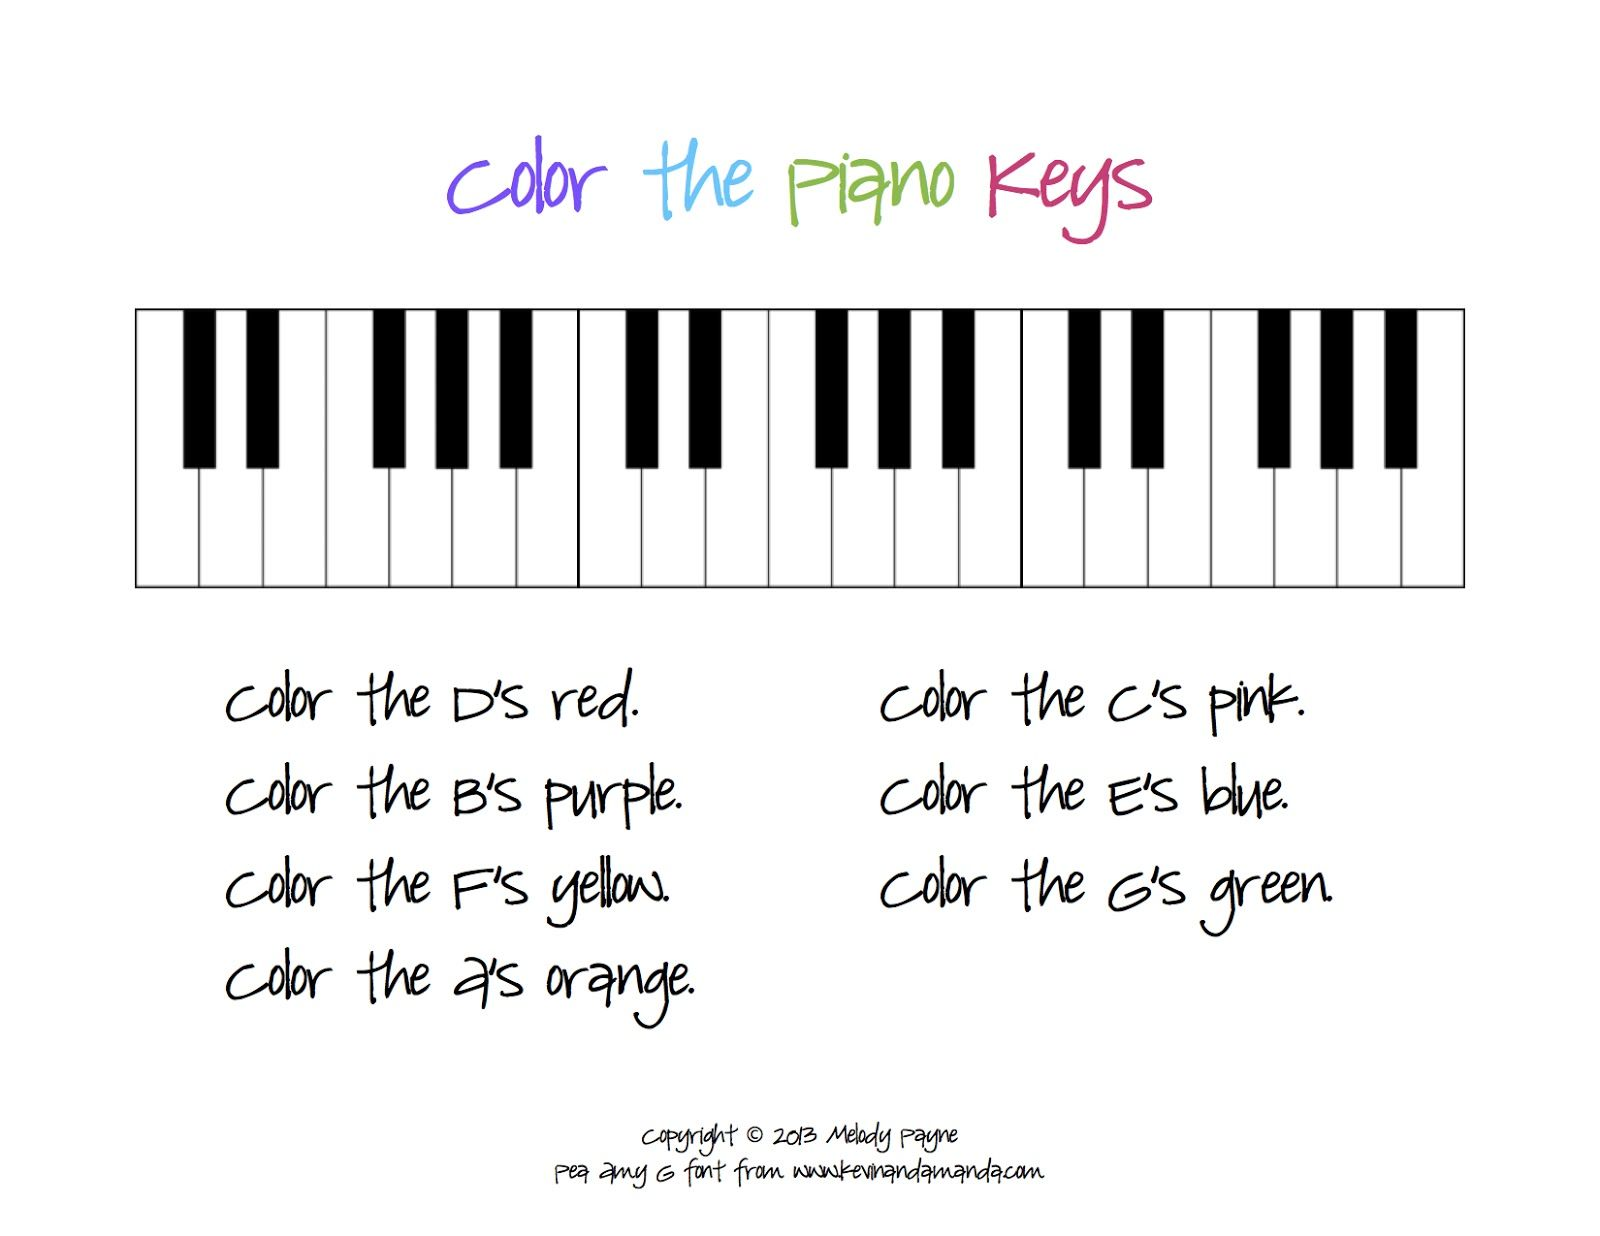 Colors for learning free printable learning colors coloring pages are - Color The Piano Keys Sheet